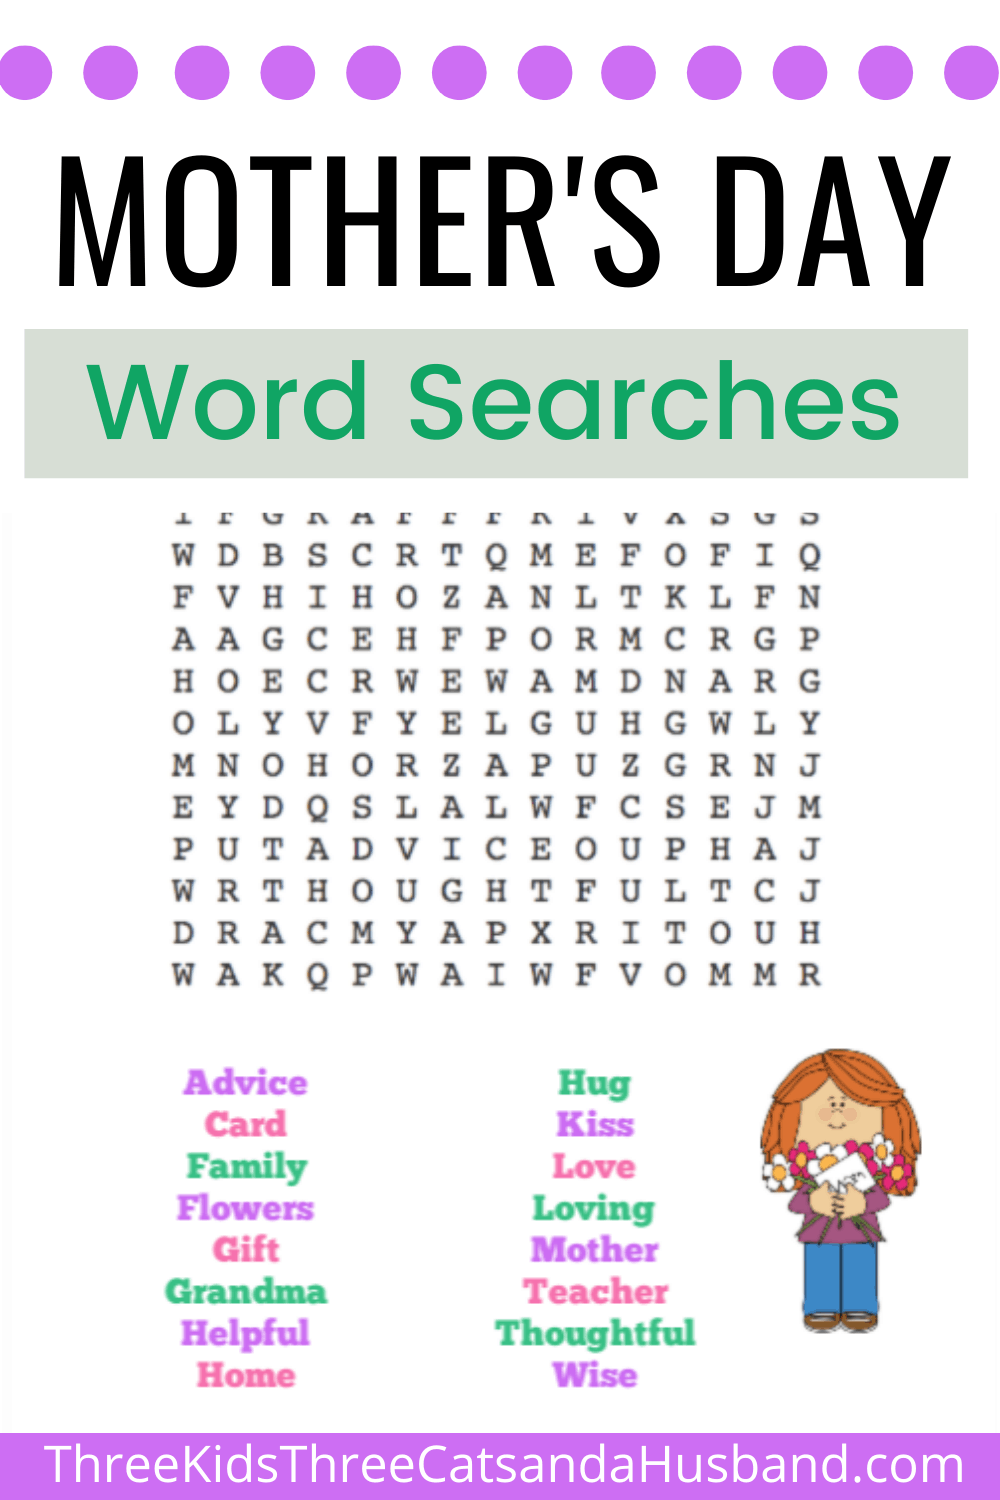 Free printable mother's day word searches